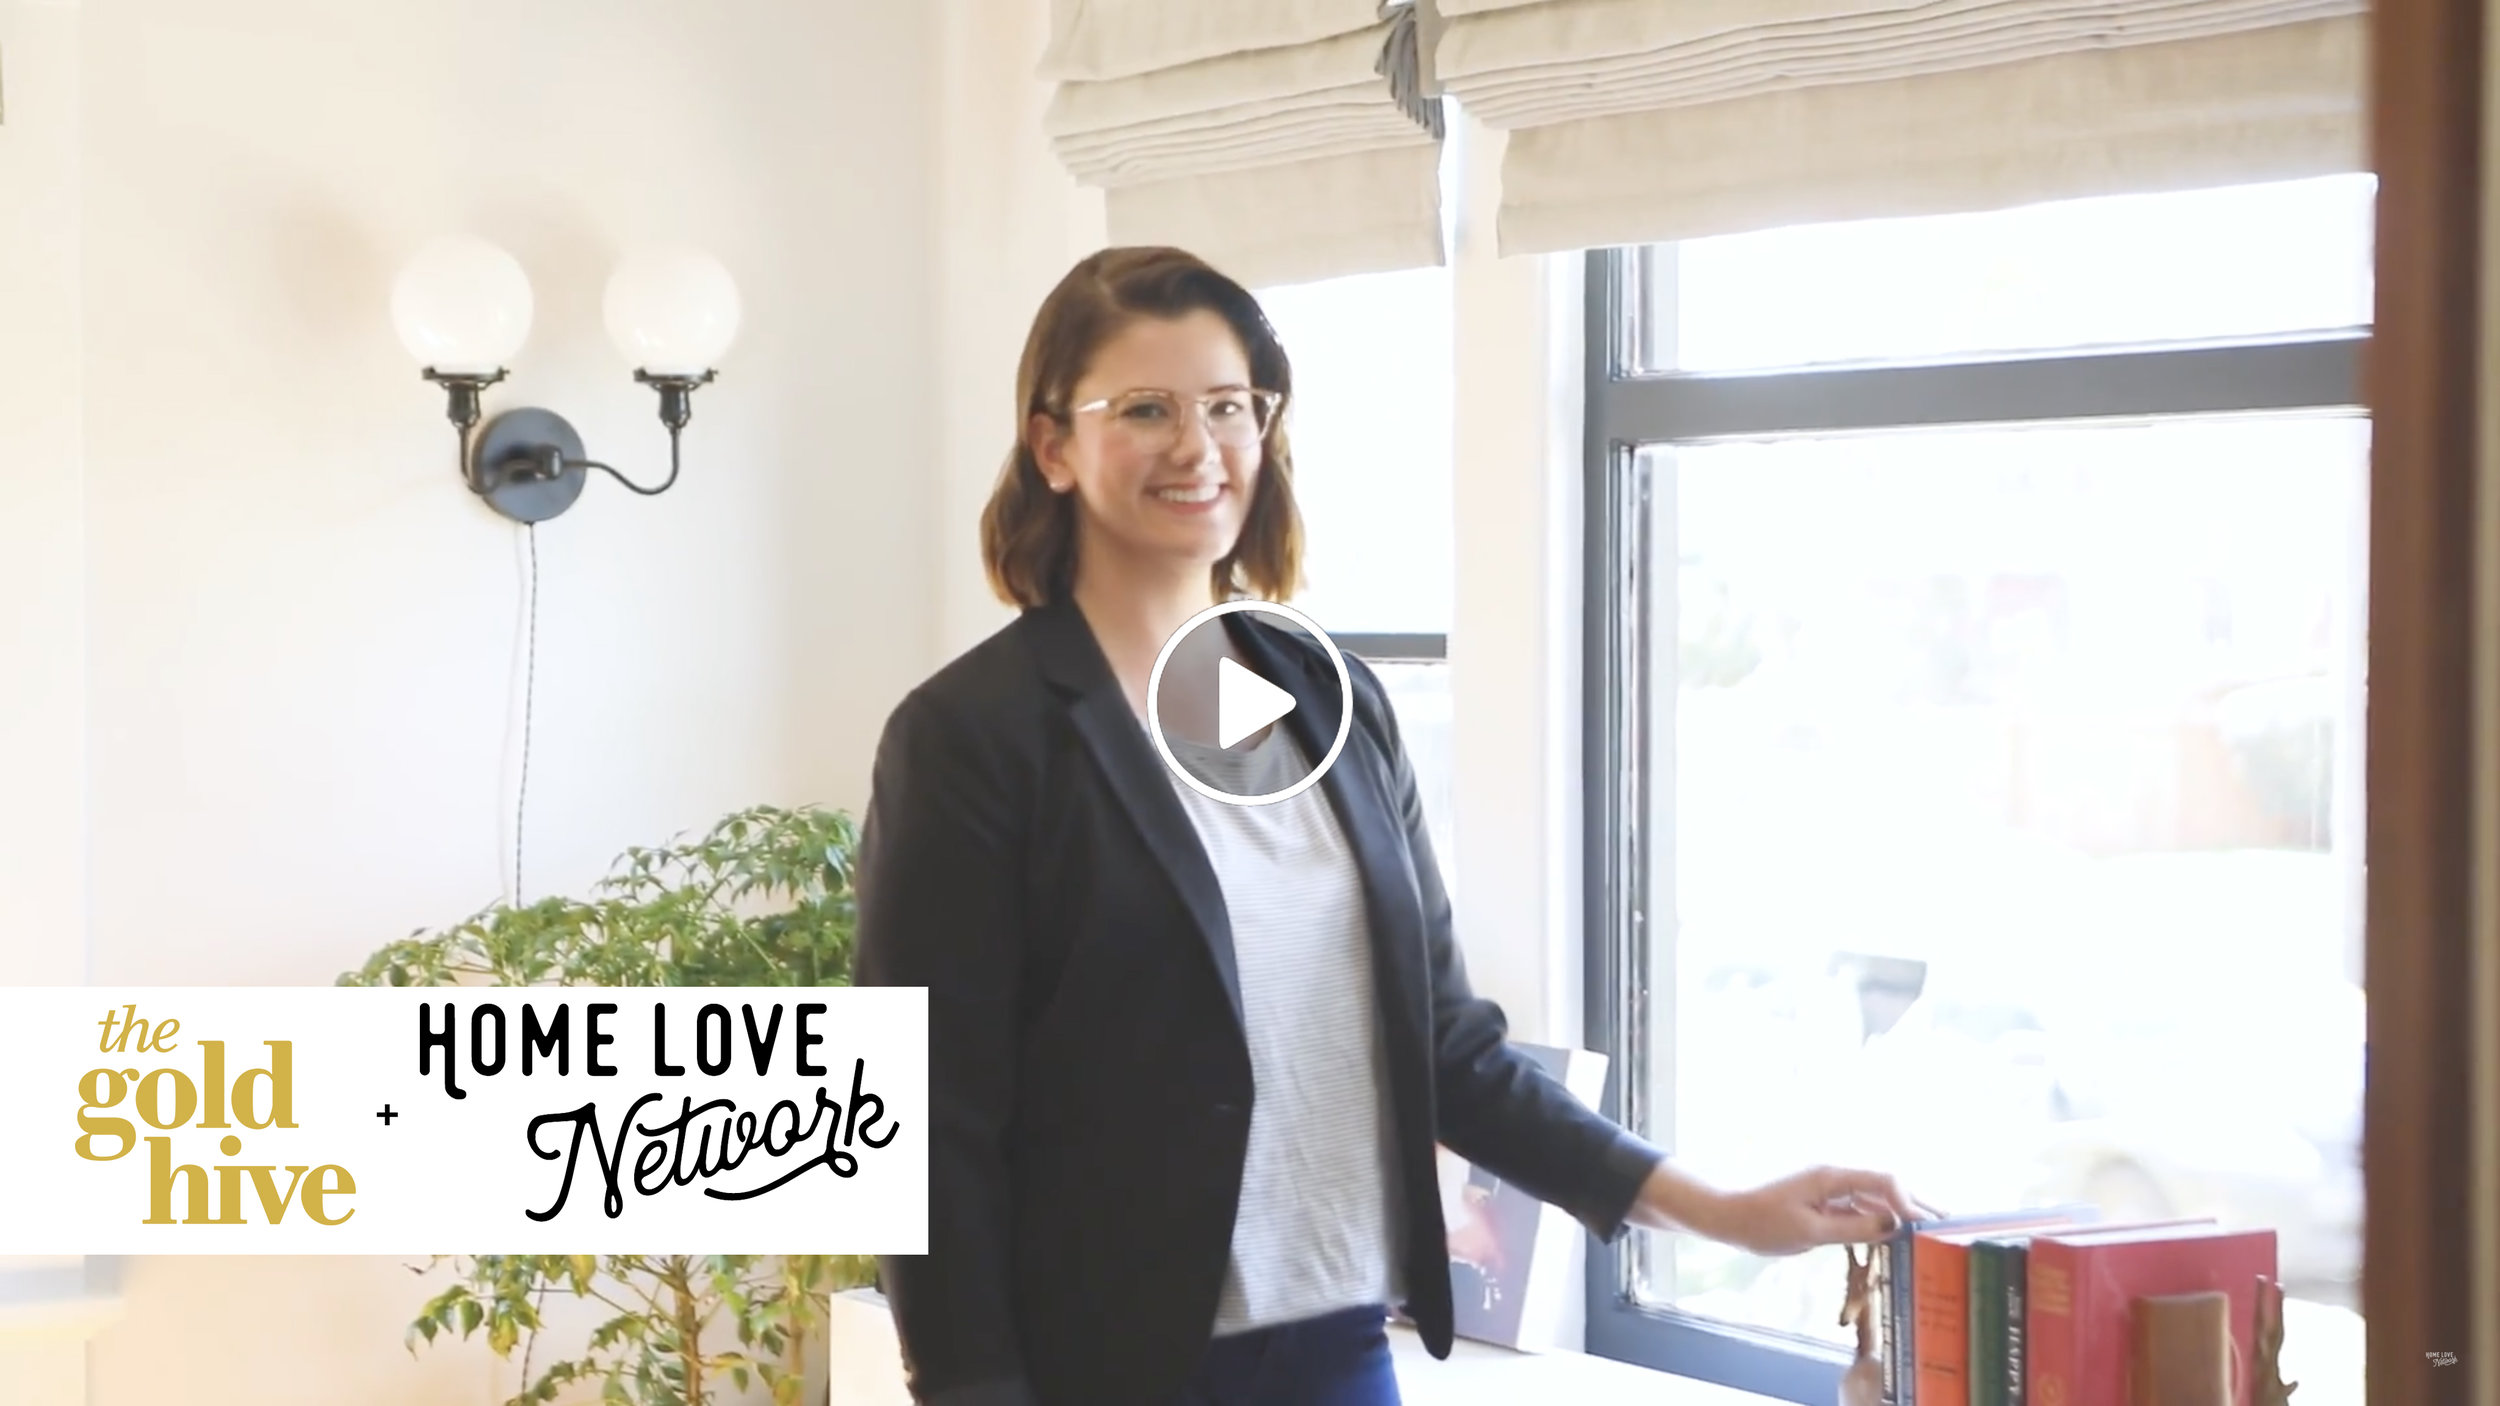 Ashley Goldman The Gold Hive blog One Room Challenge Home Love Network